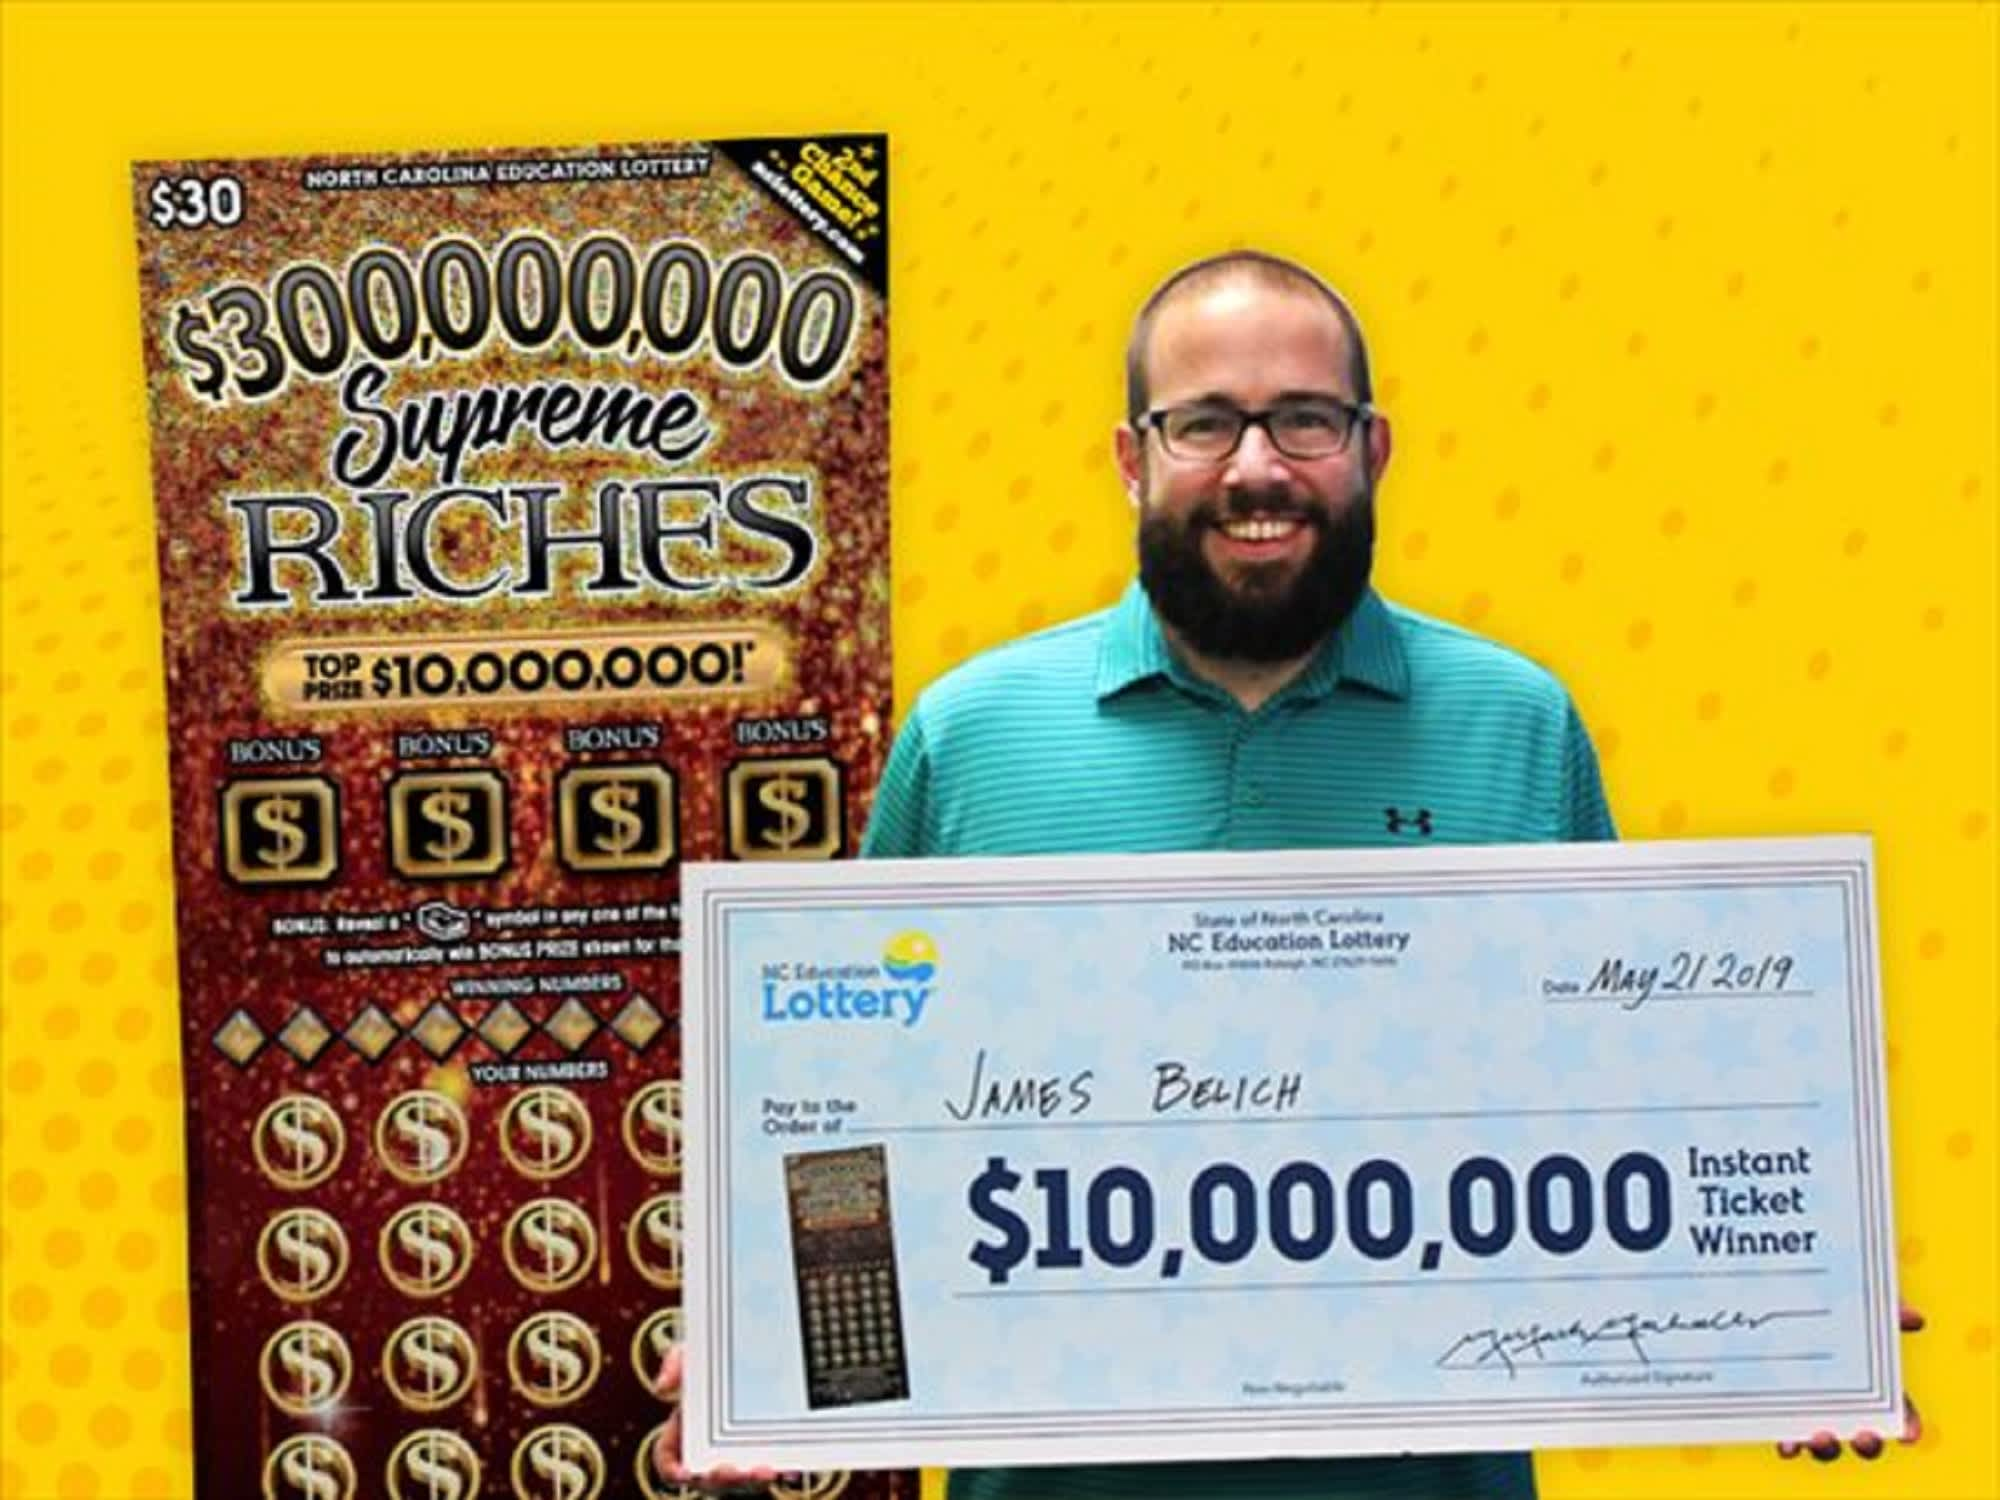 SC dad bought a lottery ticket on his lunch break, won $10 million